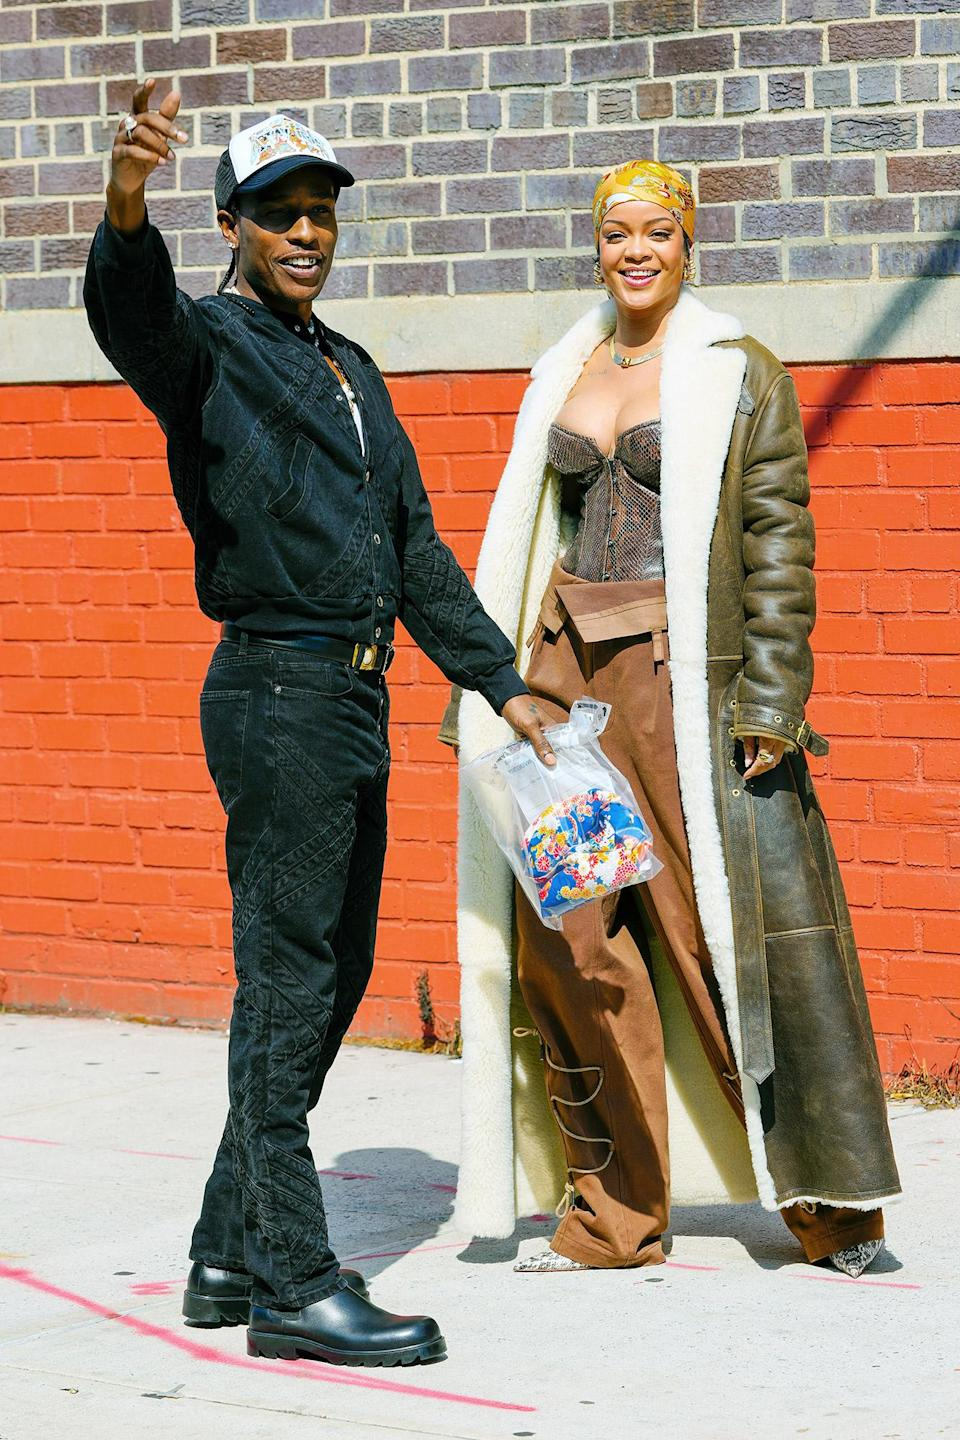 <p>In their July 2021 music video shoot, the couple donned fashion-forward looks that featured mostly leather for Rihanna and a monochromatic jacket and pants set topped off with a trucker hat for Rocky. </p>